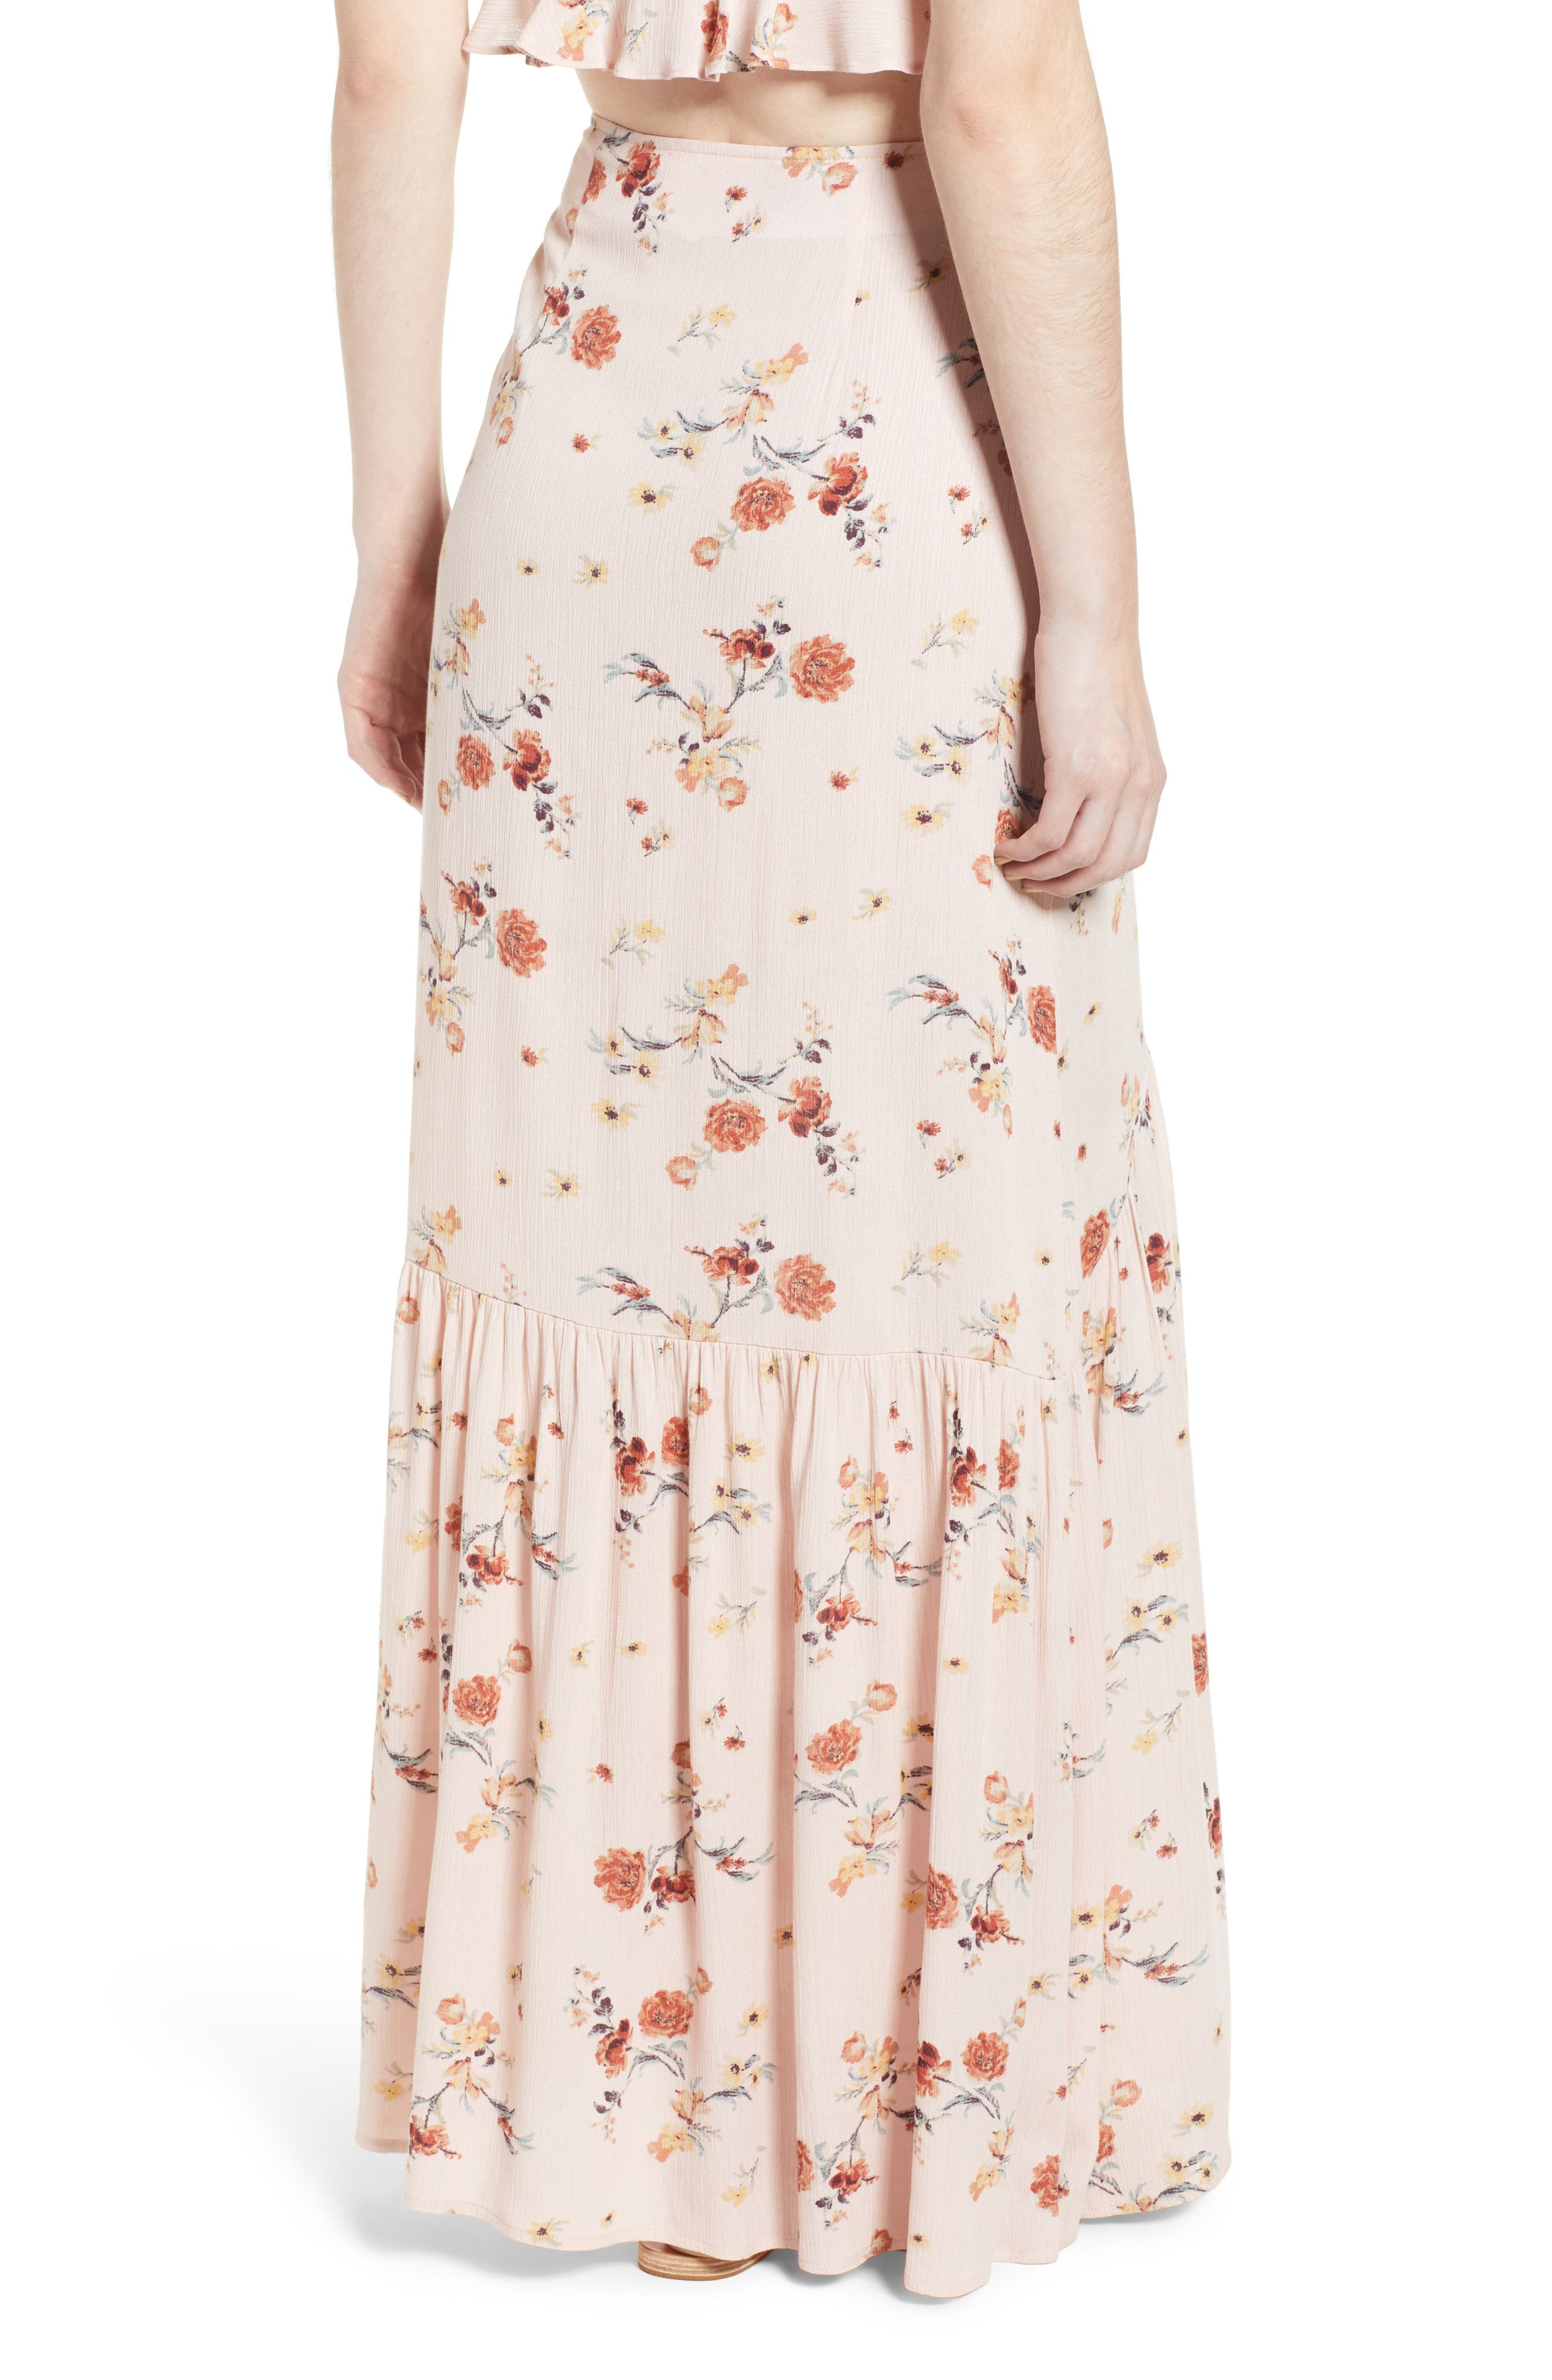 LOST + WANDER, Rosa Floral Maxi Skirt, Alternate thumbnail 2, color, 650